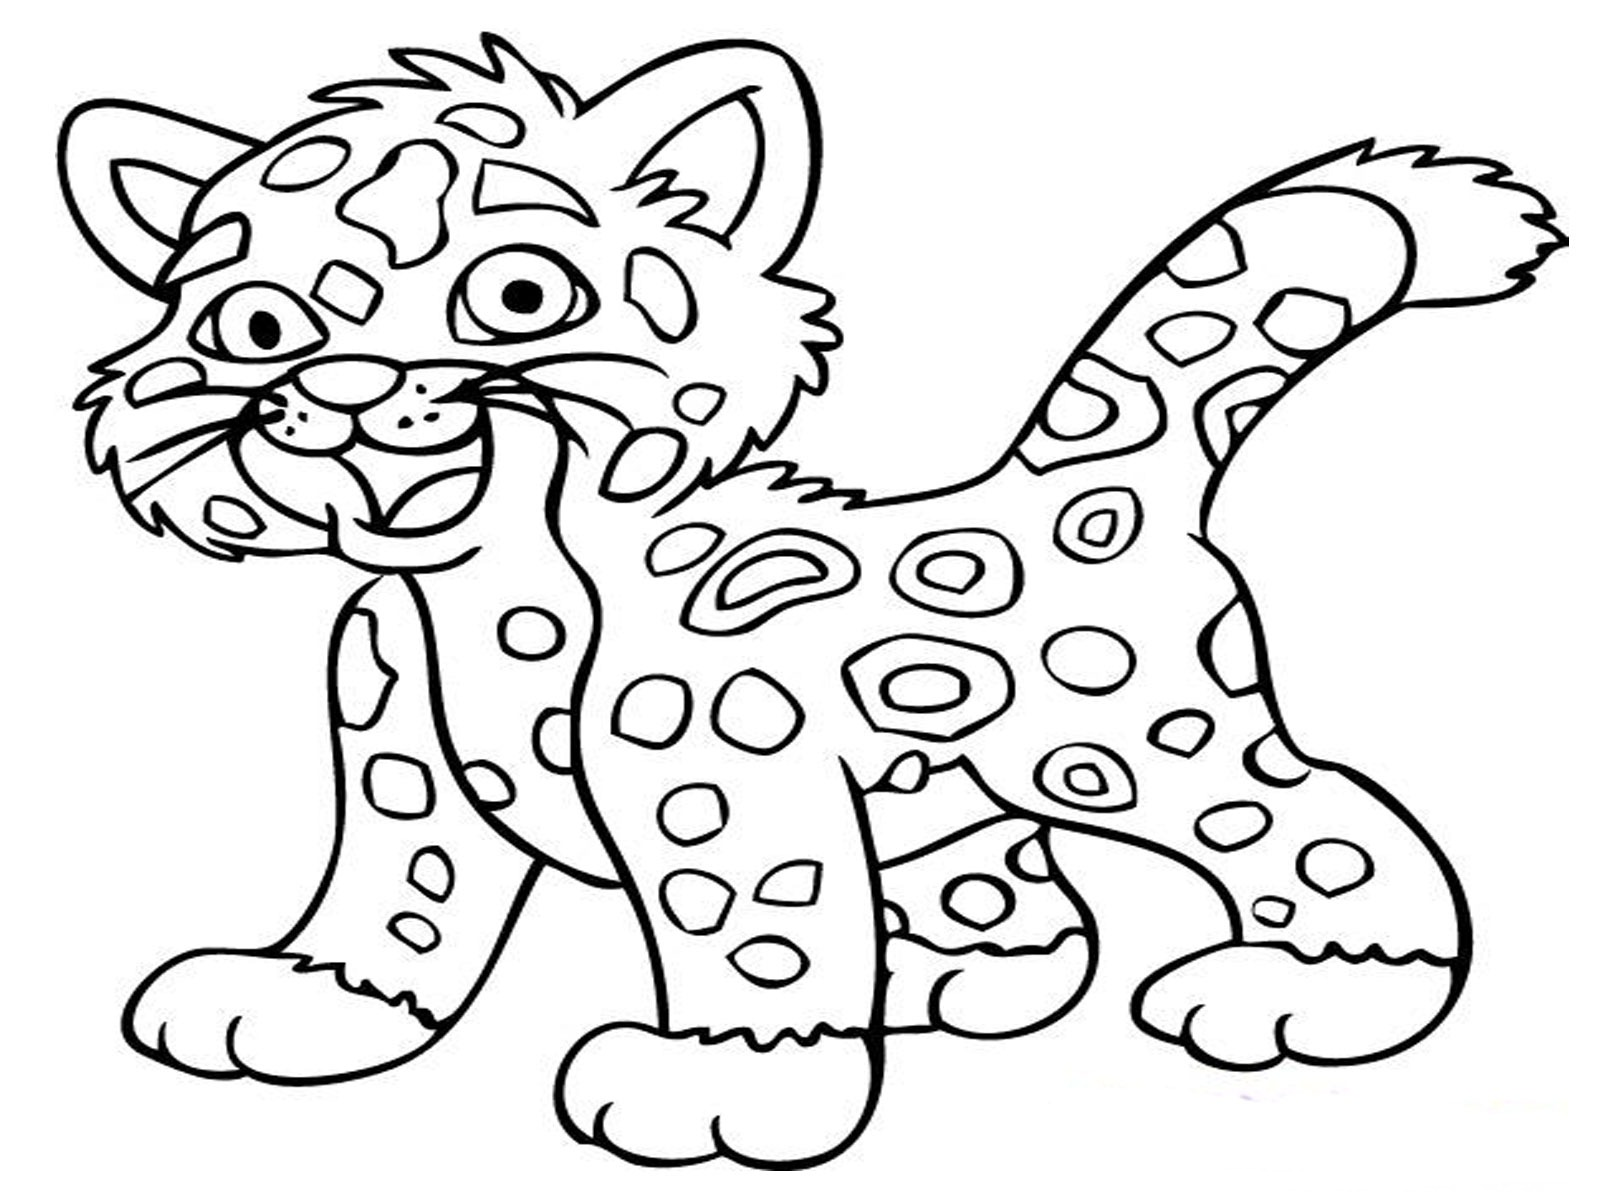 Stuffed Animal From Drawing at GetDrawings.com | Free for personal ...